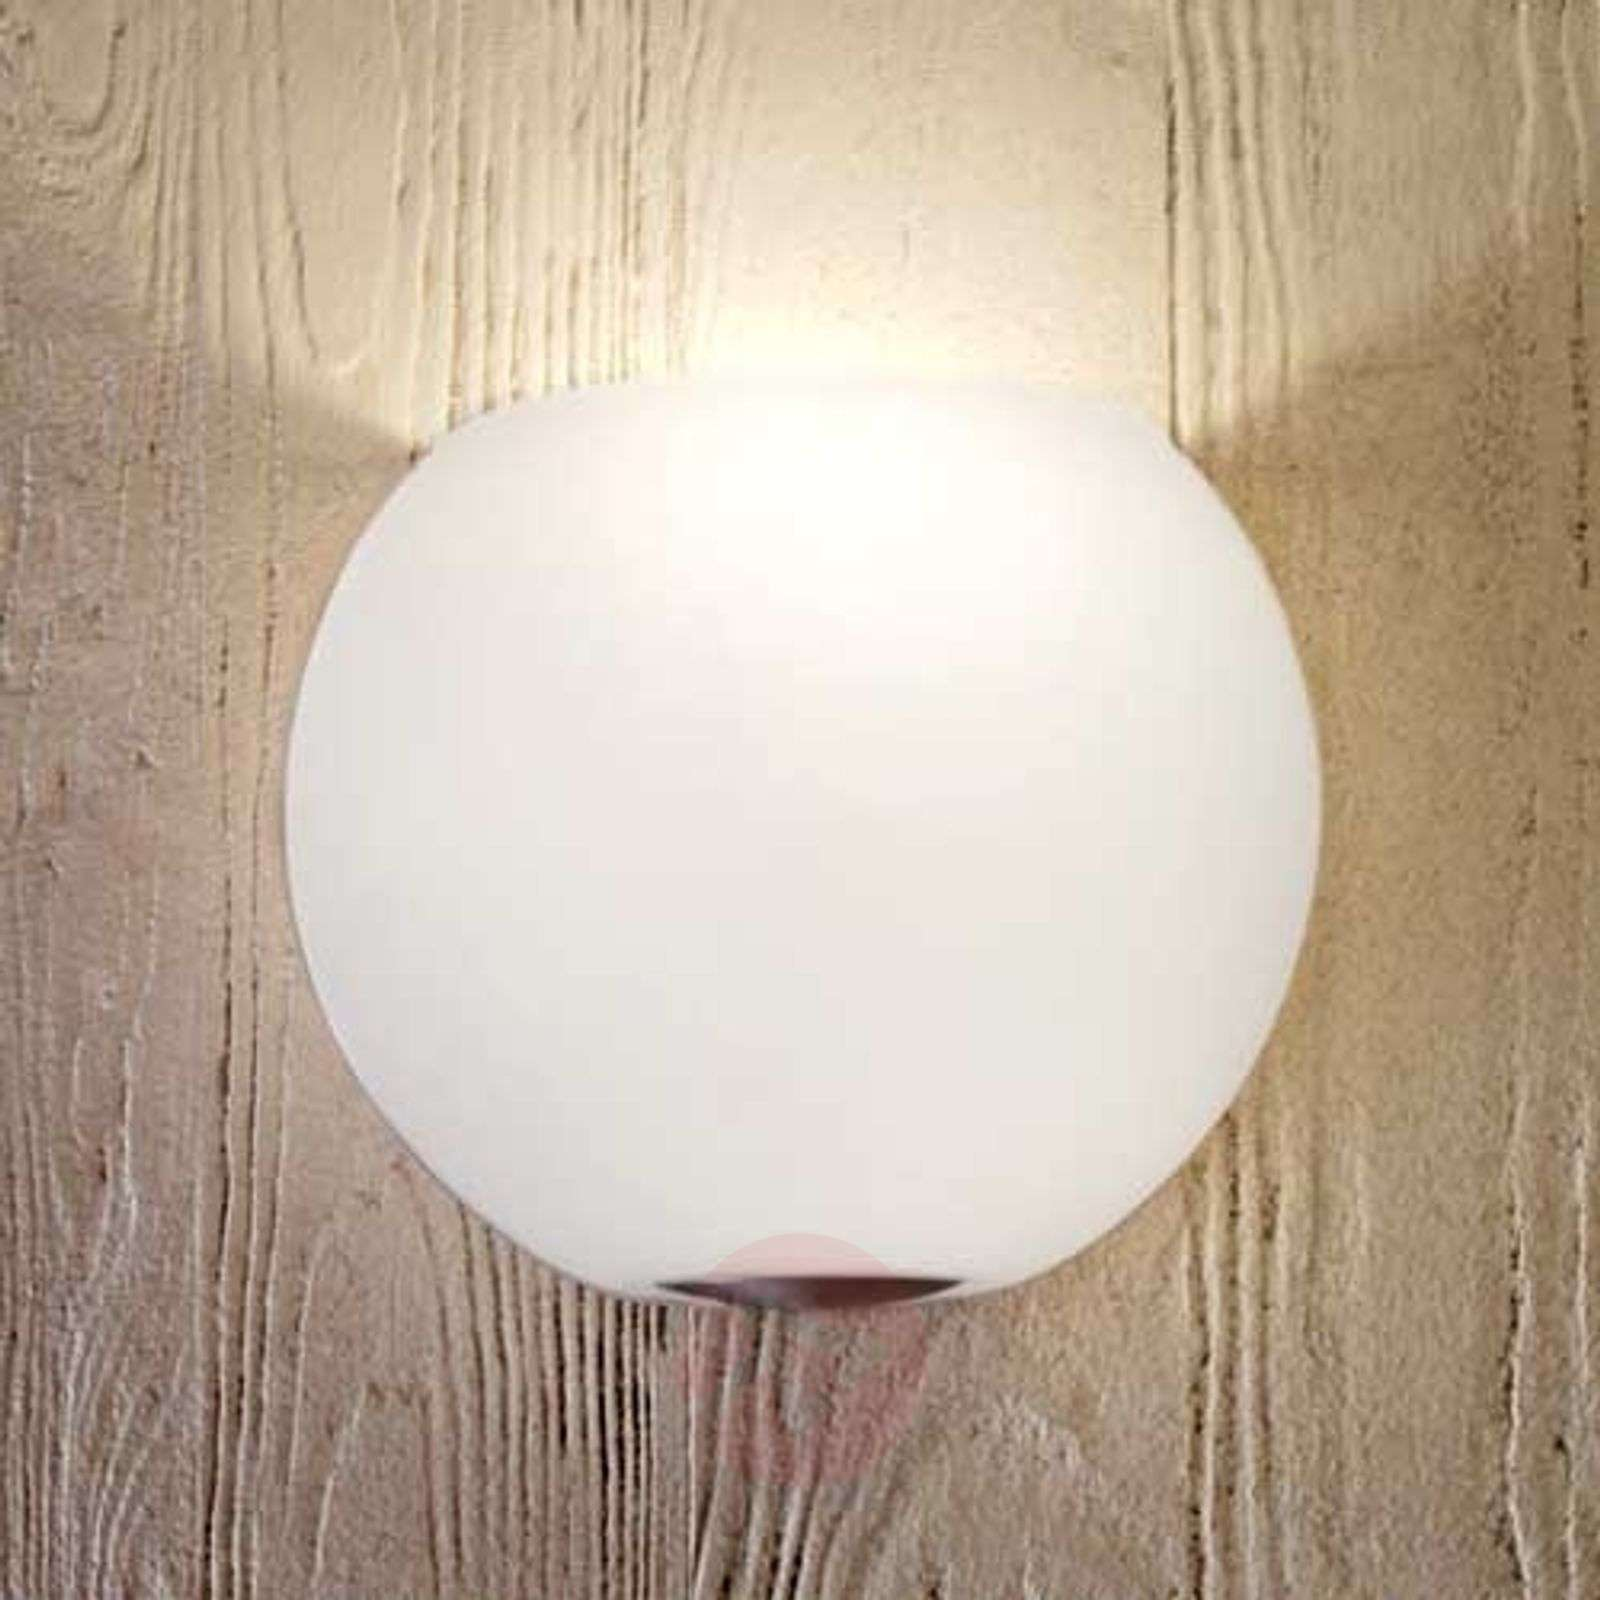 Acquista applique sfera lampade